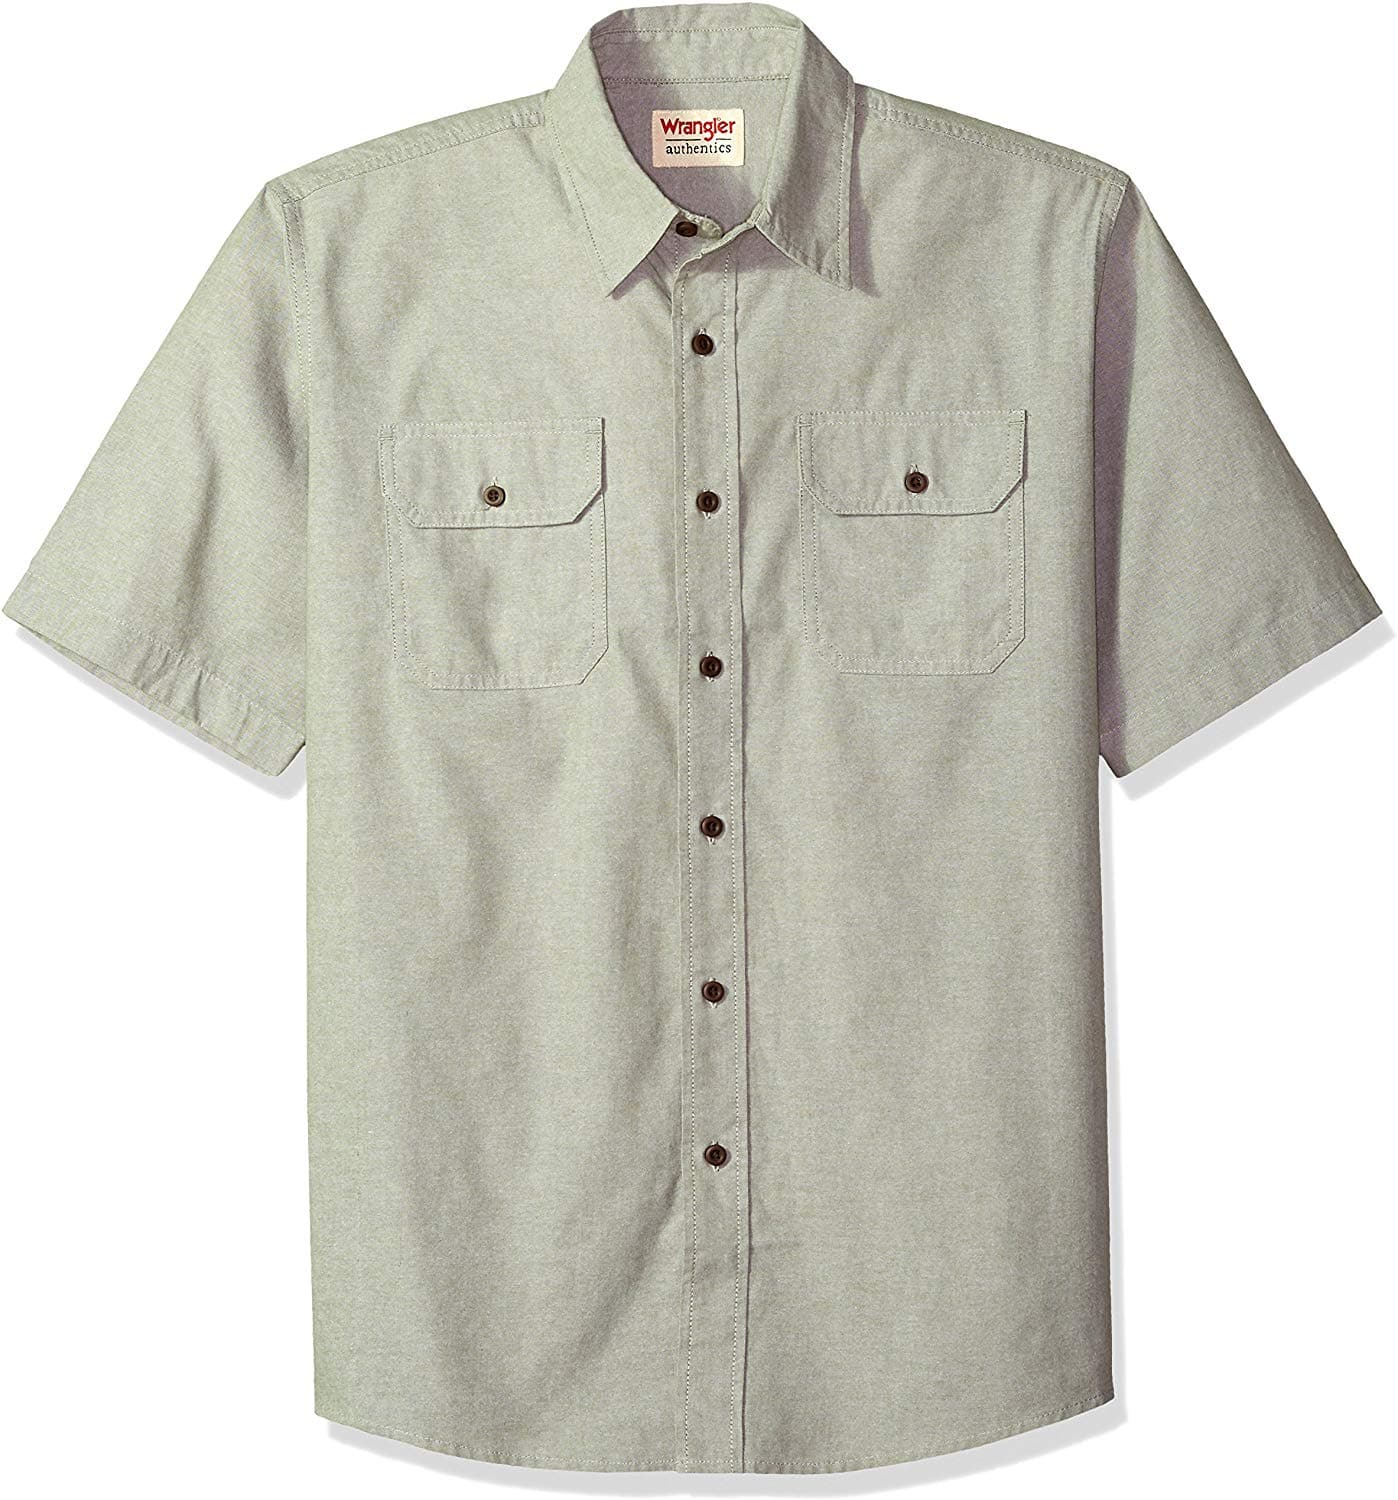 Wrangler Men's Short Sleeve Classic Twill Shirt - $3.00 + Free Shipping with Prime - Amazon